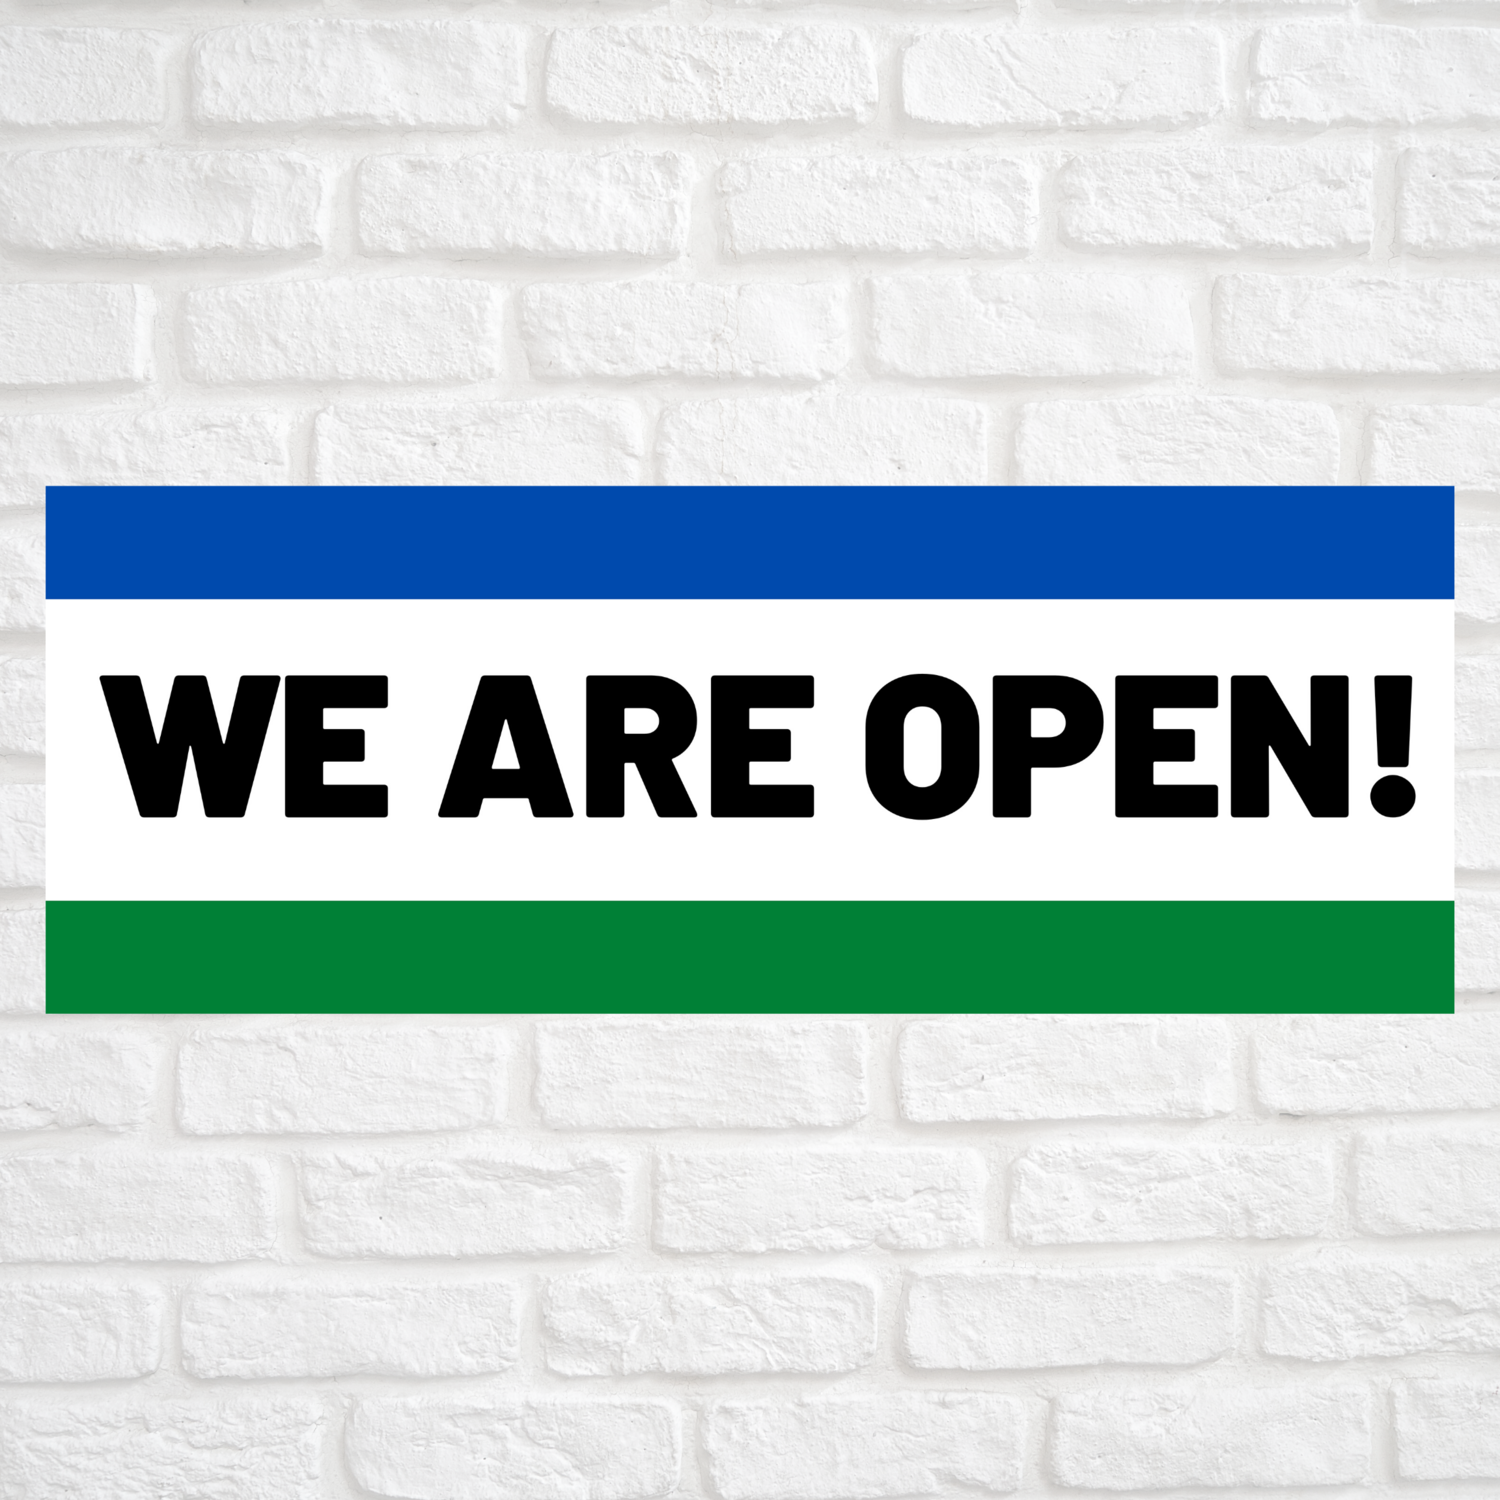 We Are Open! Blue/Green